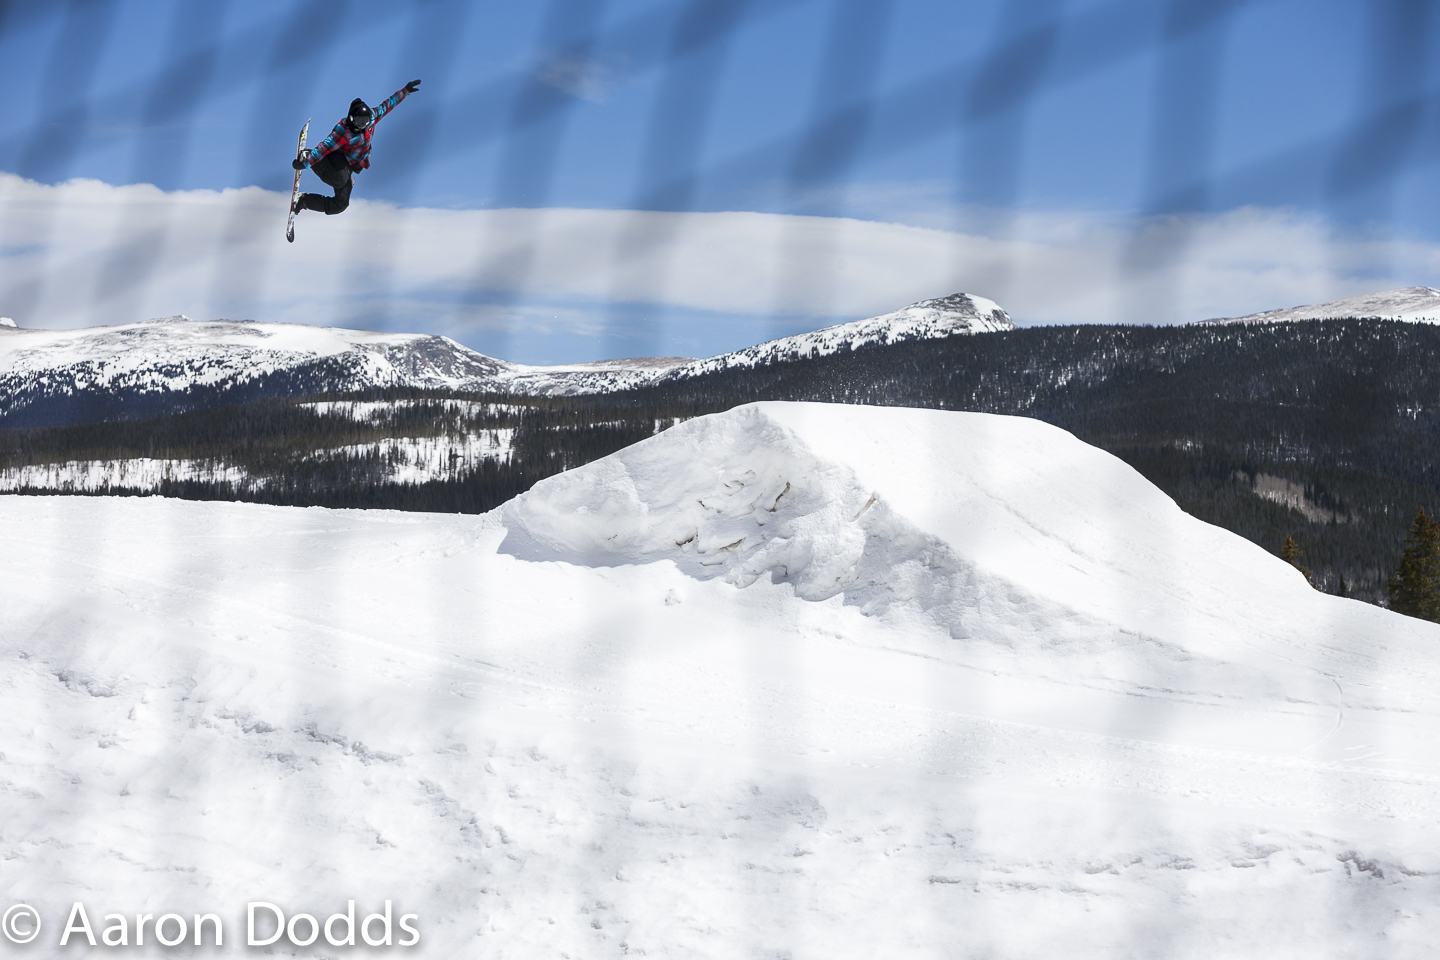 R: Benji Farrow P: Aaron Dodds L: Winter Park, Colorado